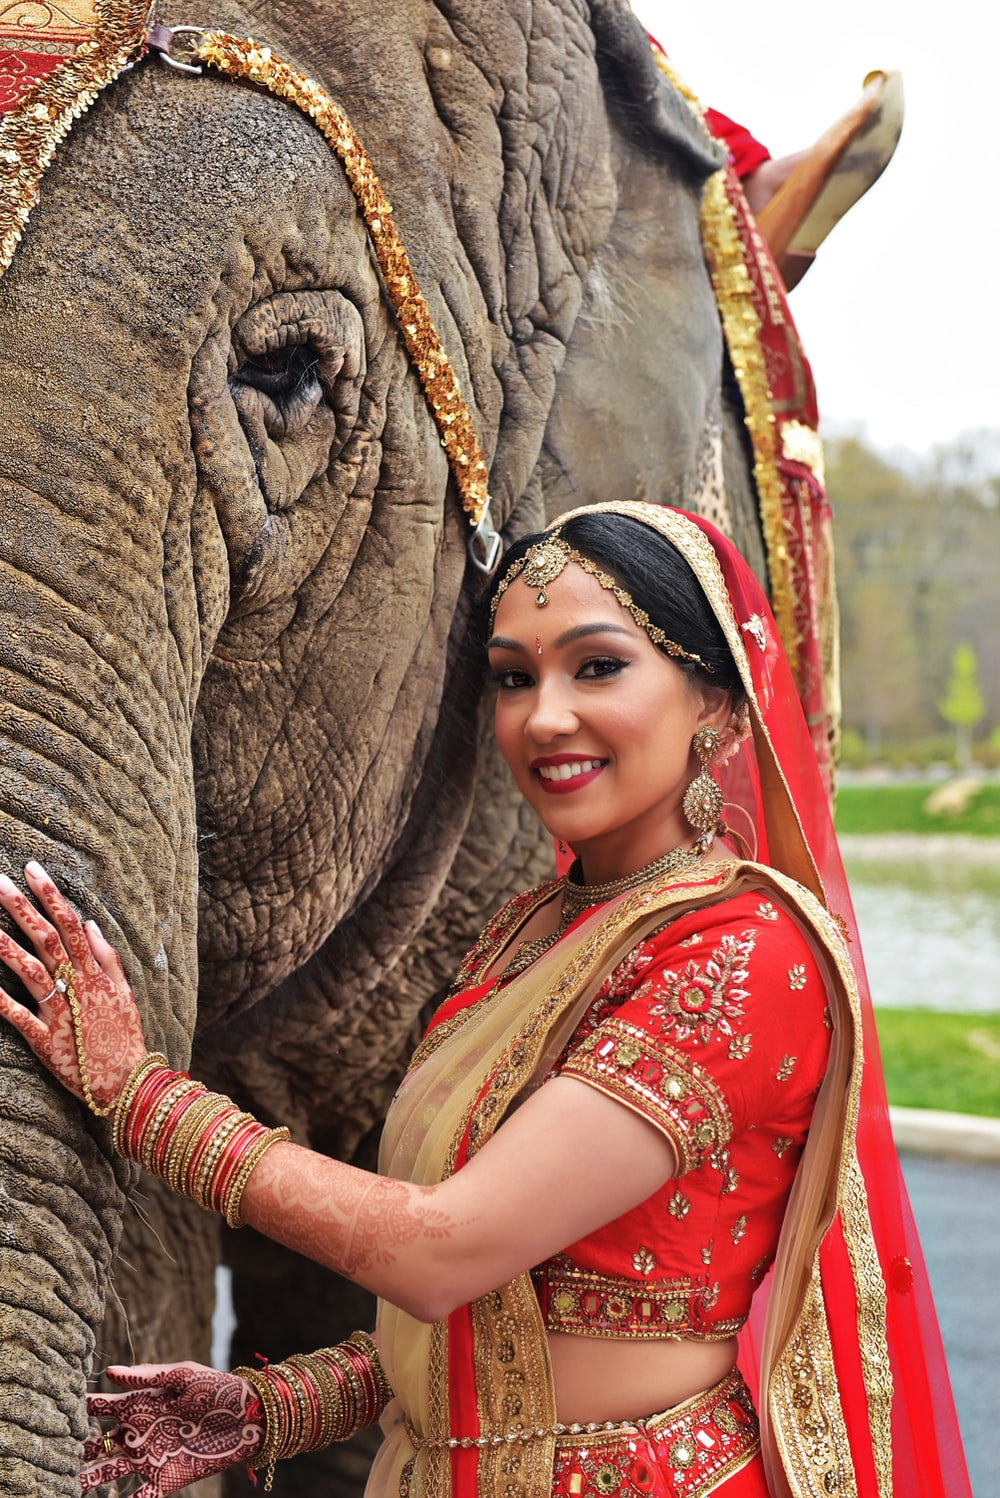 woman in red and brown floral dress hugging elephant